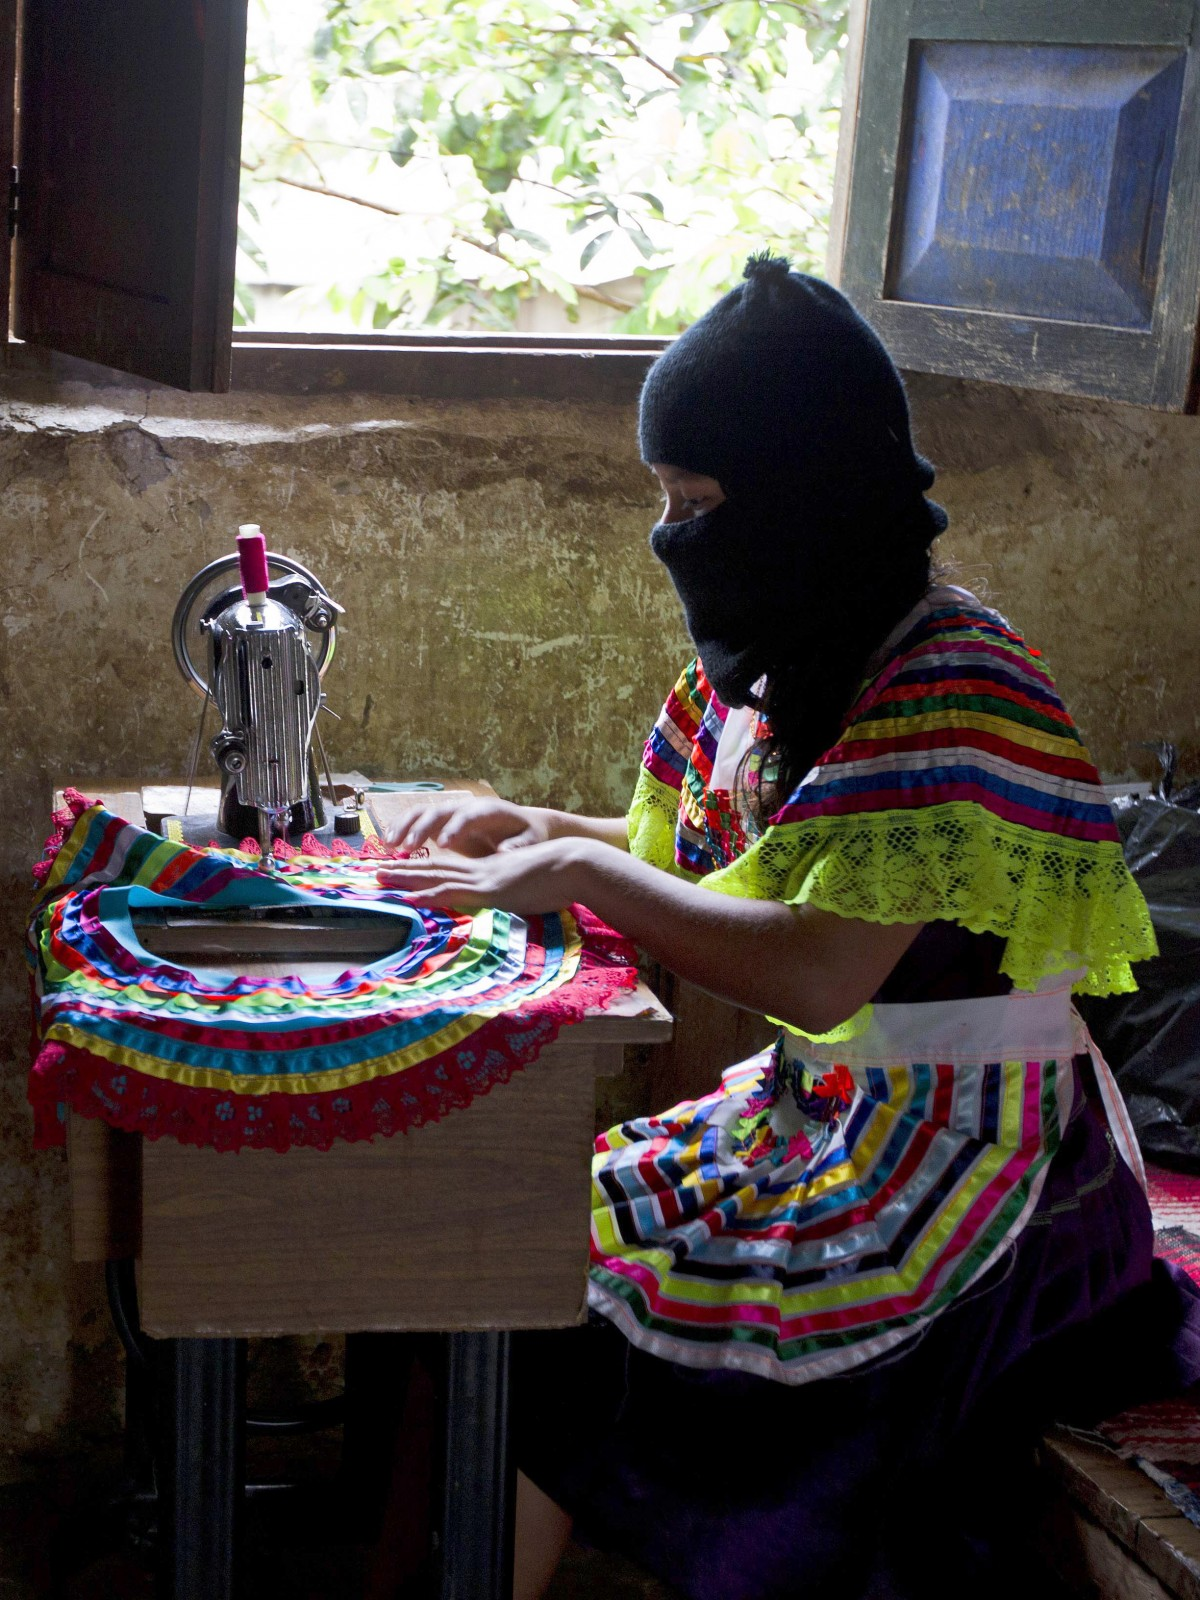 In this Dec. 27, 2013 photo, a woman sews part of a traditional skirt in the Zapatista controlled community of La Garrucha, Mexico. Since their uprising 20 years ago, Zapatistas, known by their initials as the EZLN, have lived in secretive, closed-off enclaves they have formed in the half-dozen communities they hold. But in the last five months the rebels have opened up their communities to more than 7,000 Mexicans and foreigners interested in learning about how they self-govern and maintain their independence and way of life. Those invited stayed for a week at a time and lived with a Zapatista family. Members of these communities wear masks to hide their identities when outsiders, interested in learning about how they self-govern and maintain their way of life, gain access to visit them. (AP Photo/Christian Palma)